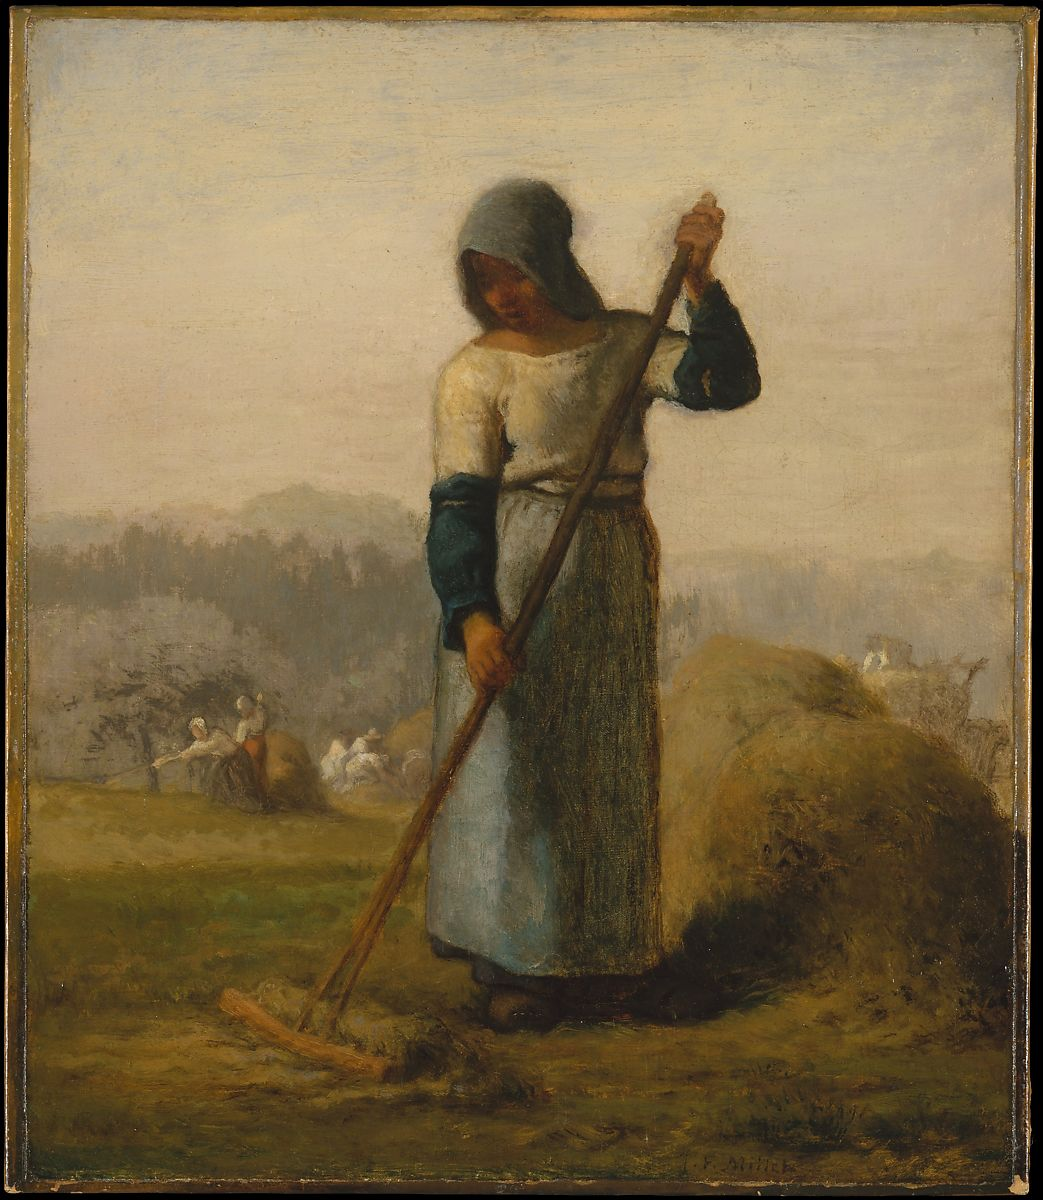 Woman with a Rake by Jean-François Millet